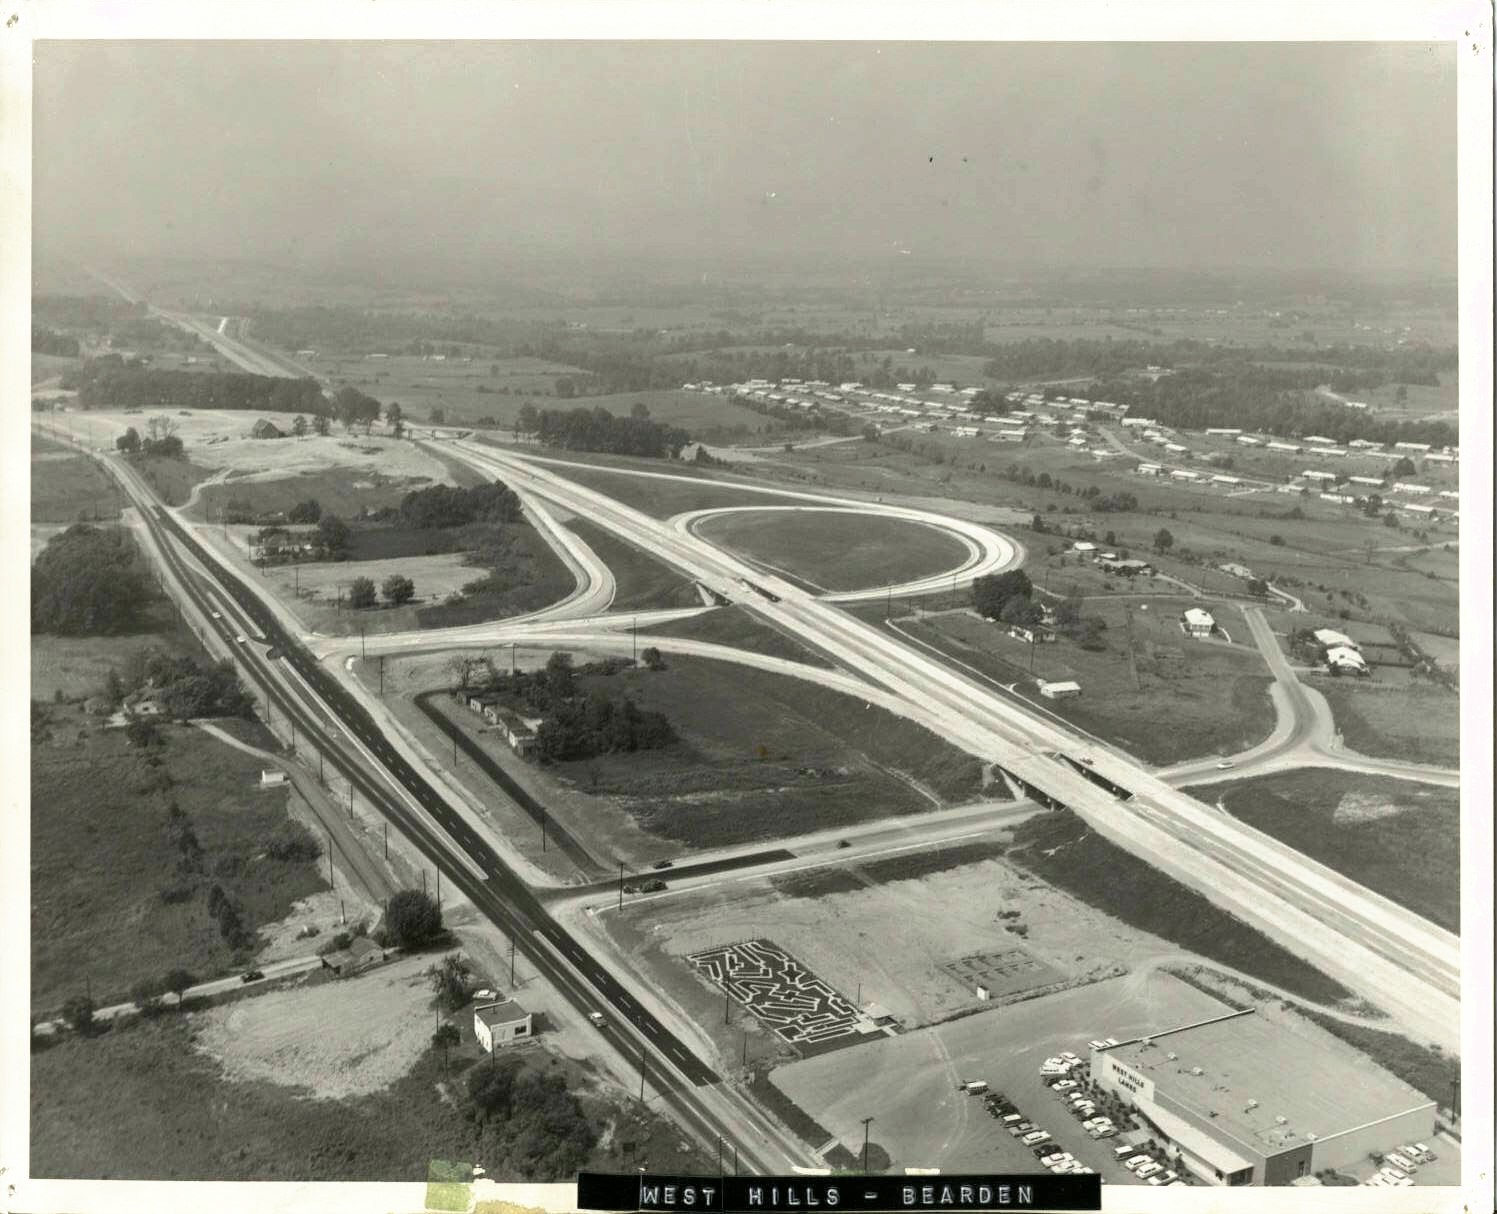 Aerial photograph of the I-40 West Hills interchange (c. 1970).